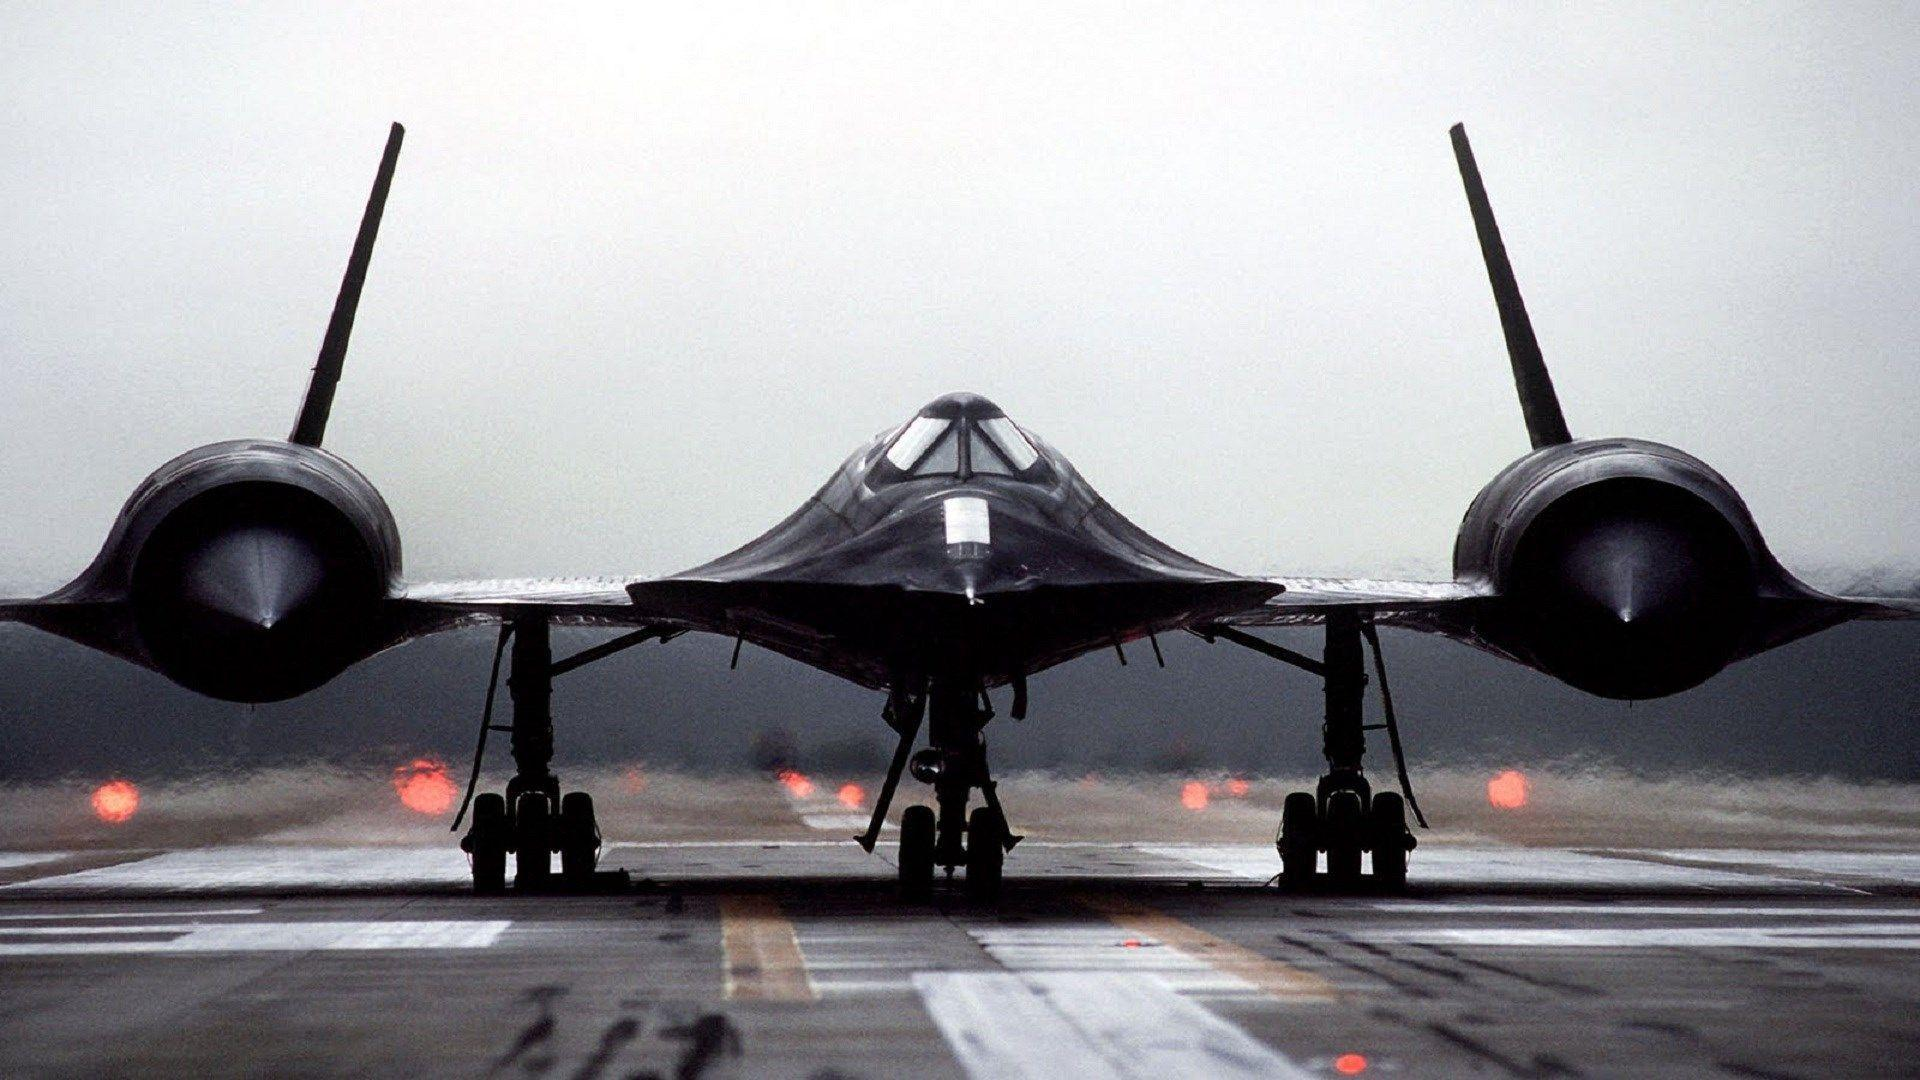 Lockheed sr 71 blackbird wallpapers wallpaper cave - Sr 71 wallpaper ...